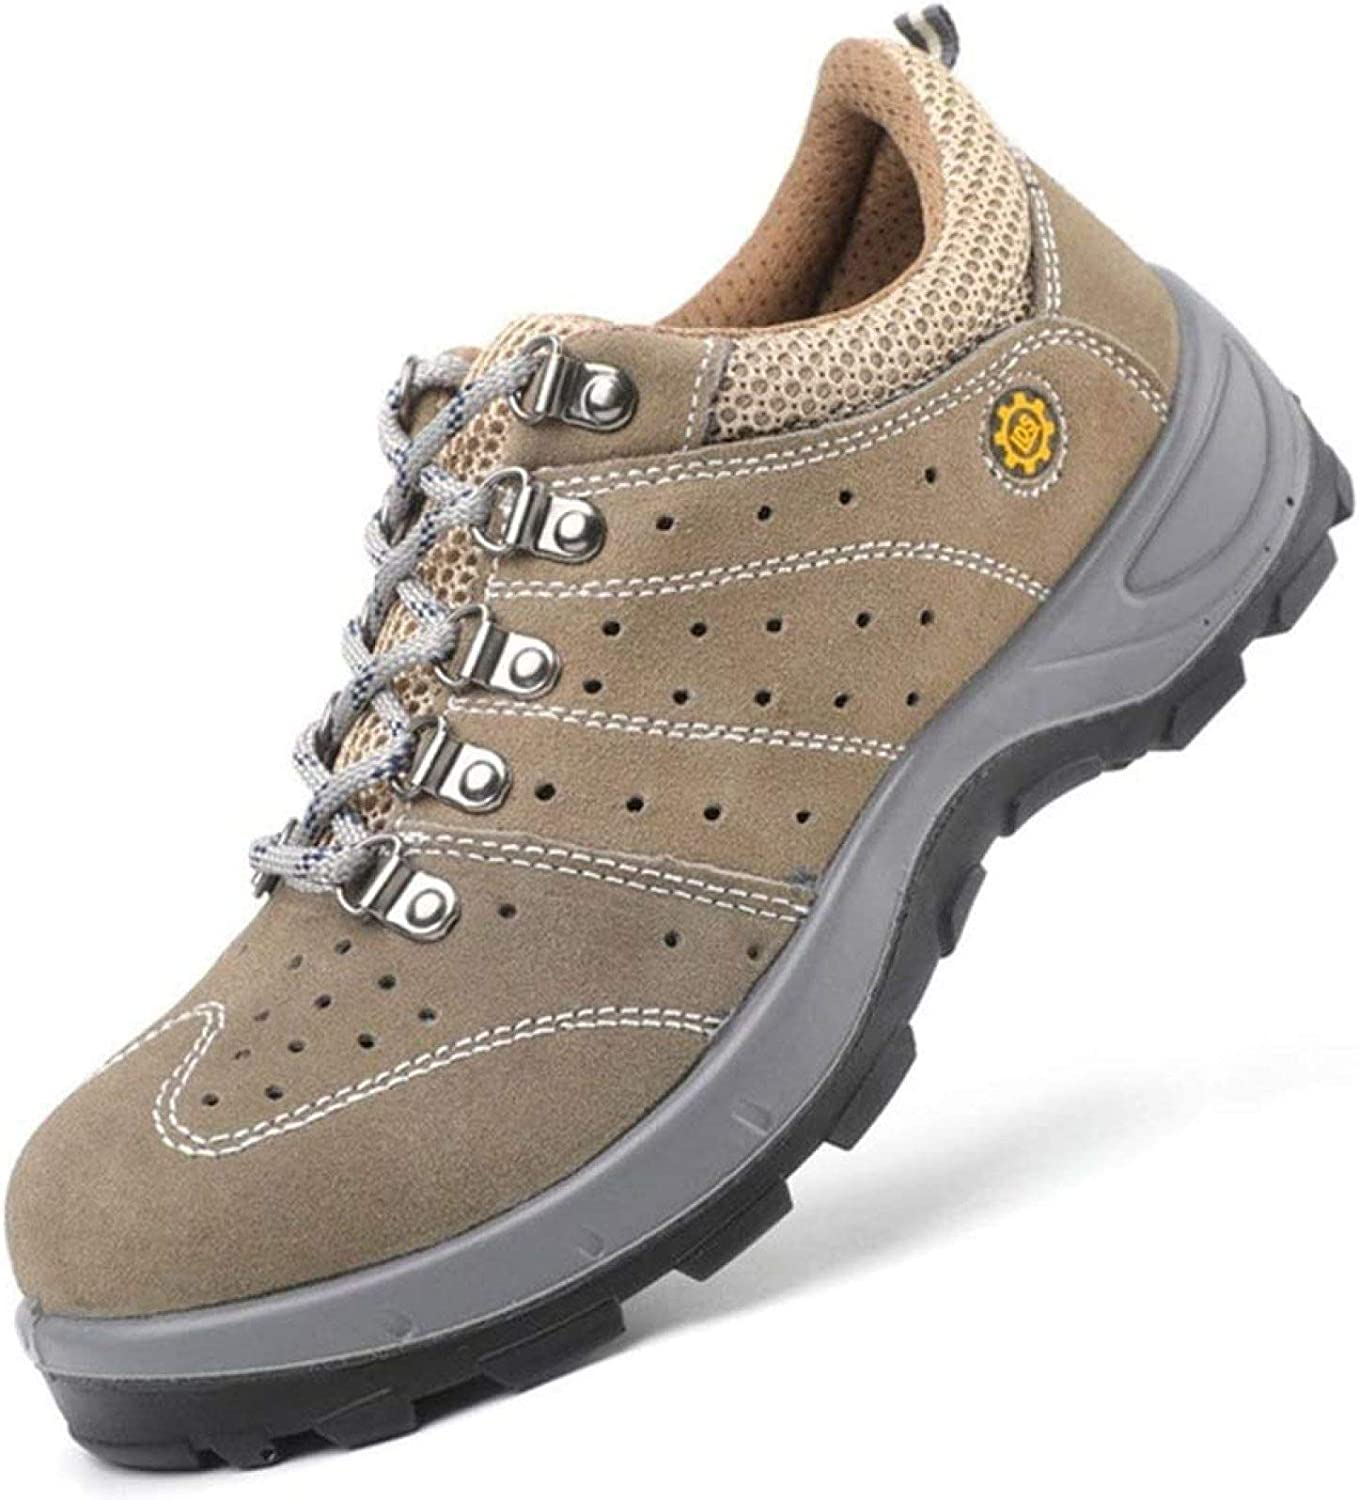 AGYE Safety Shoes Men Women,Steel Toe Shoes Work Shoes Lightweight Breathable Non Slip Puncture Proof Composite Toe Shoes,Brown-43